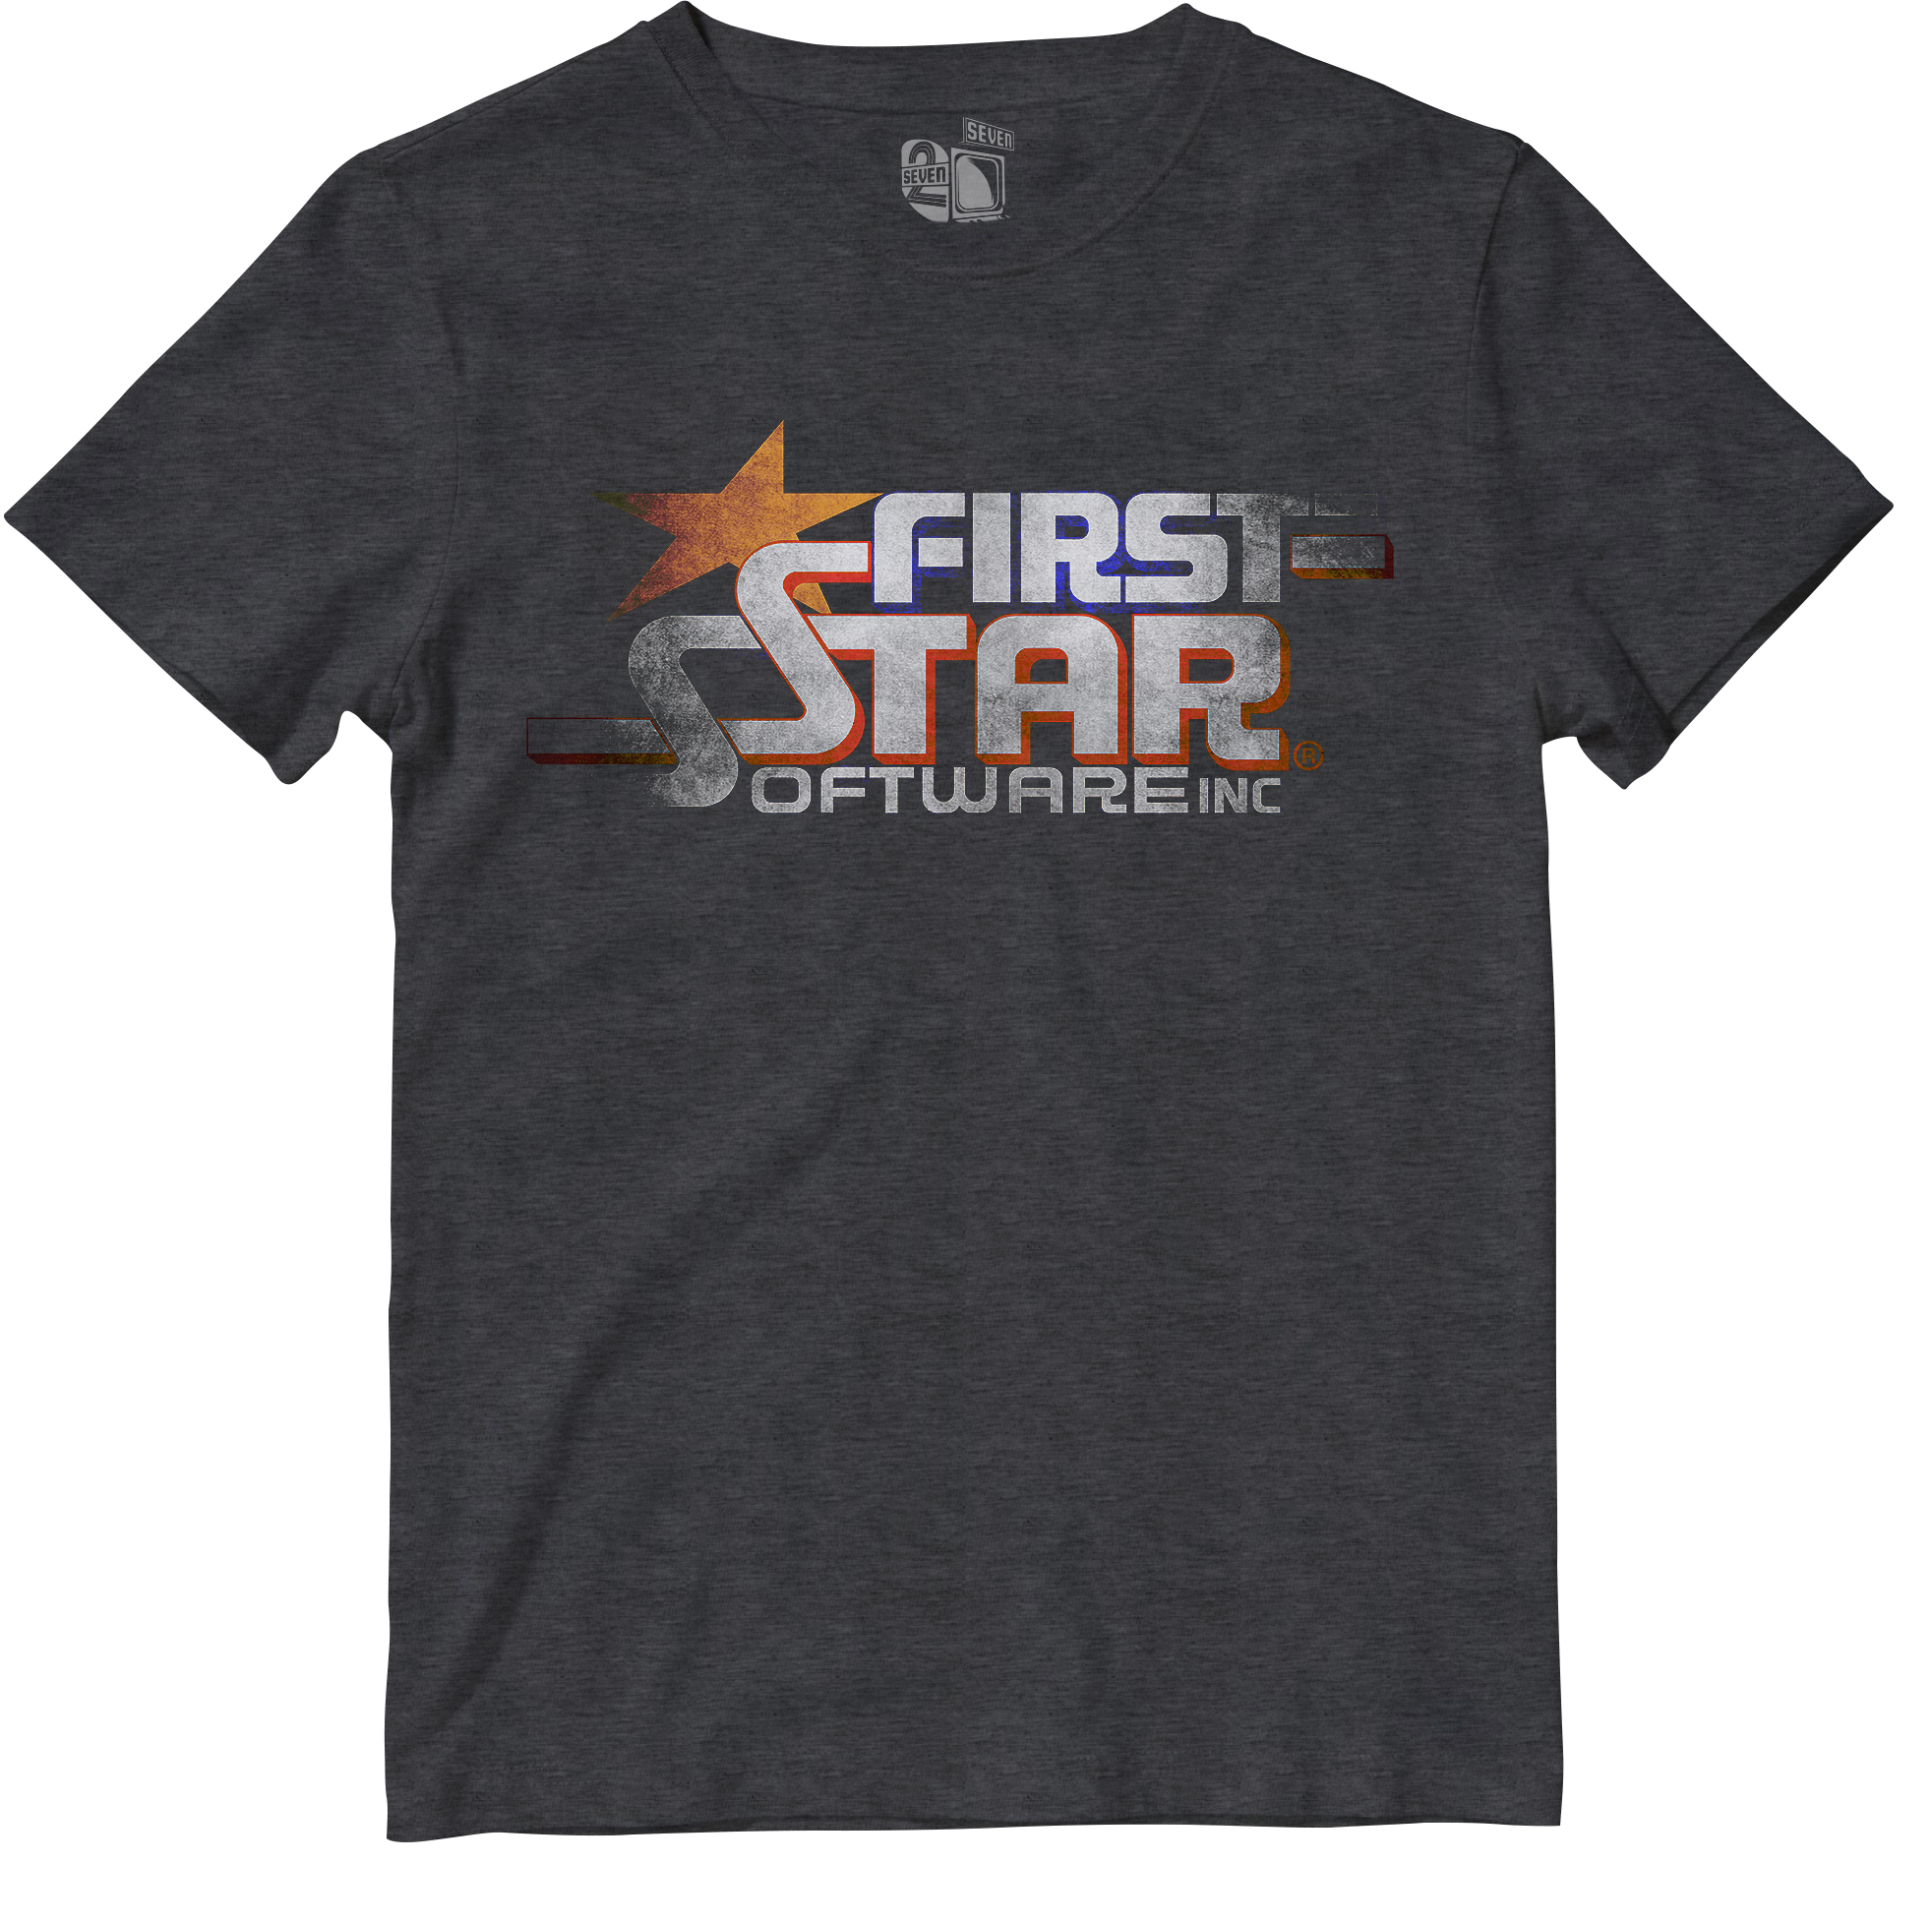 First Star Software Retro Gamer Tee Gamers tees